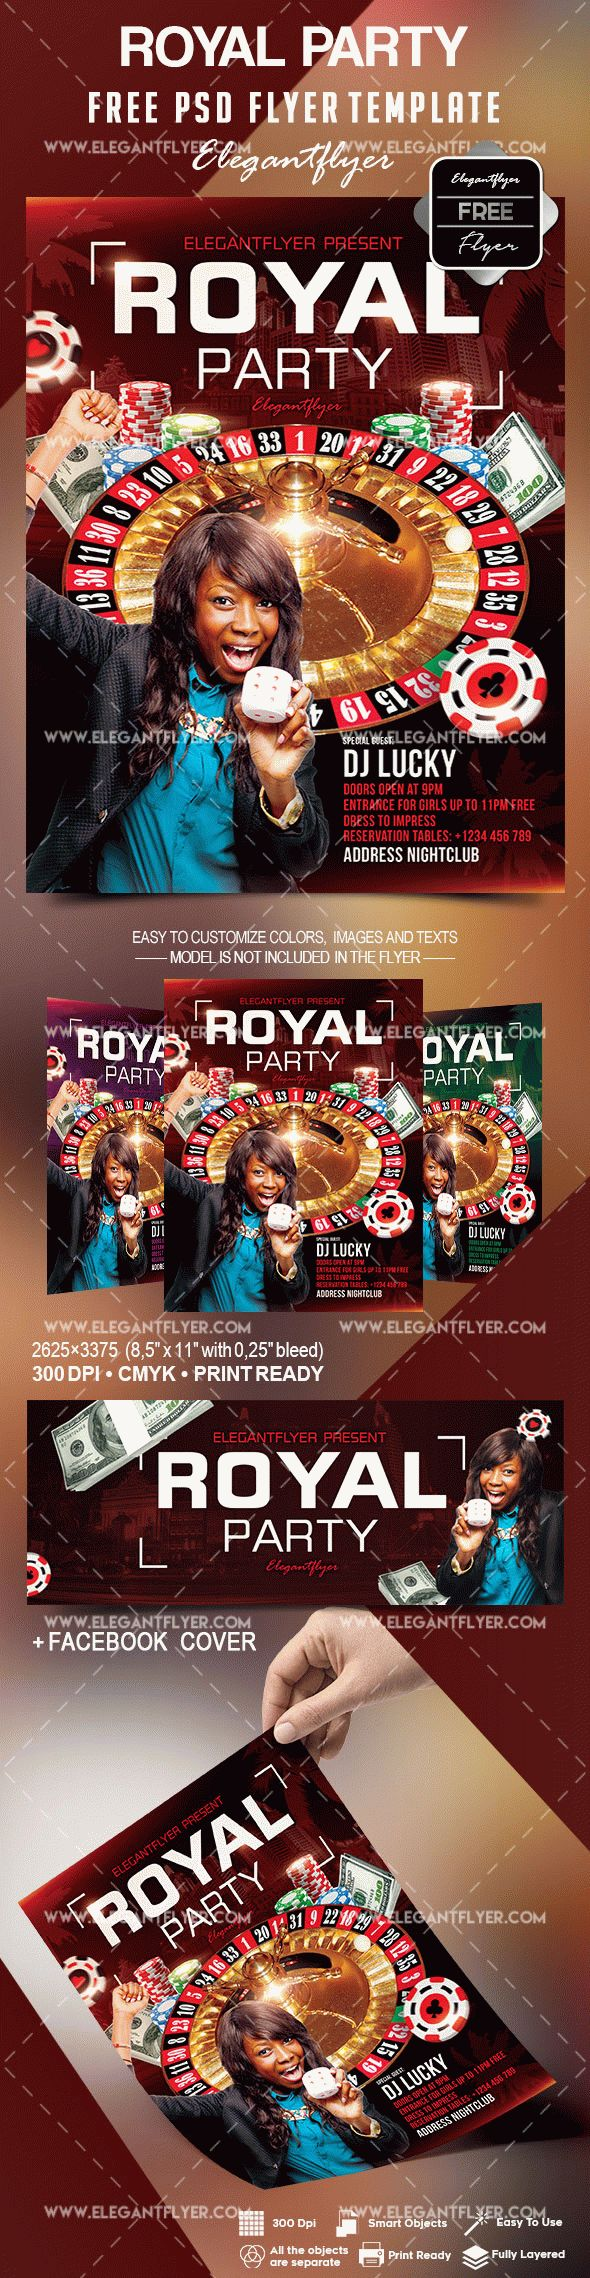 Free Royal Party Flyer Template